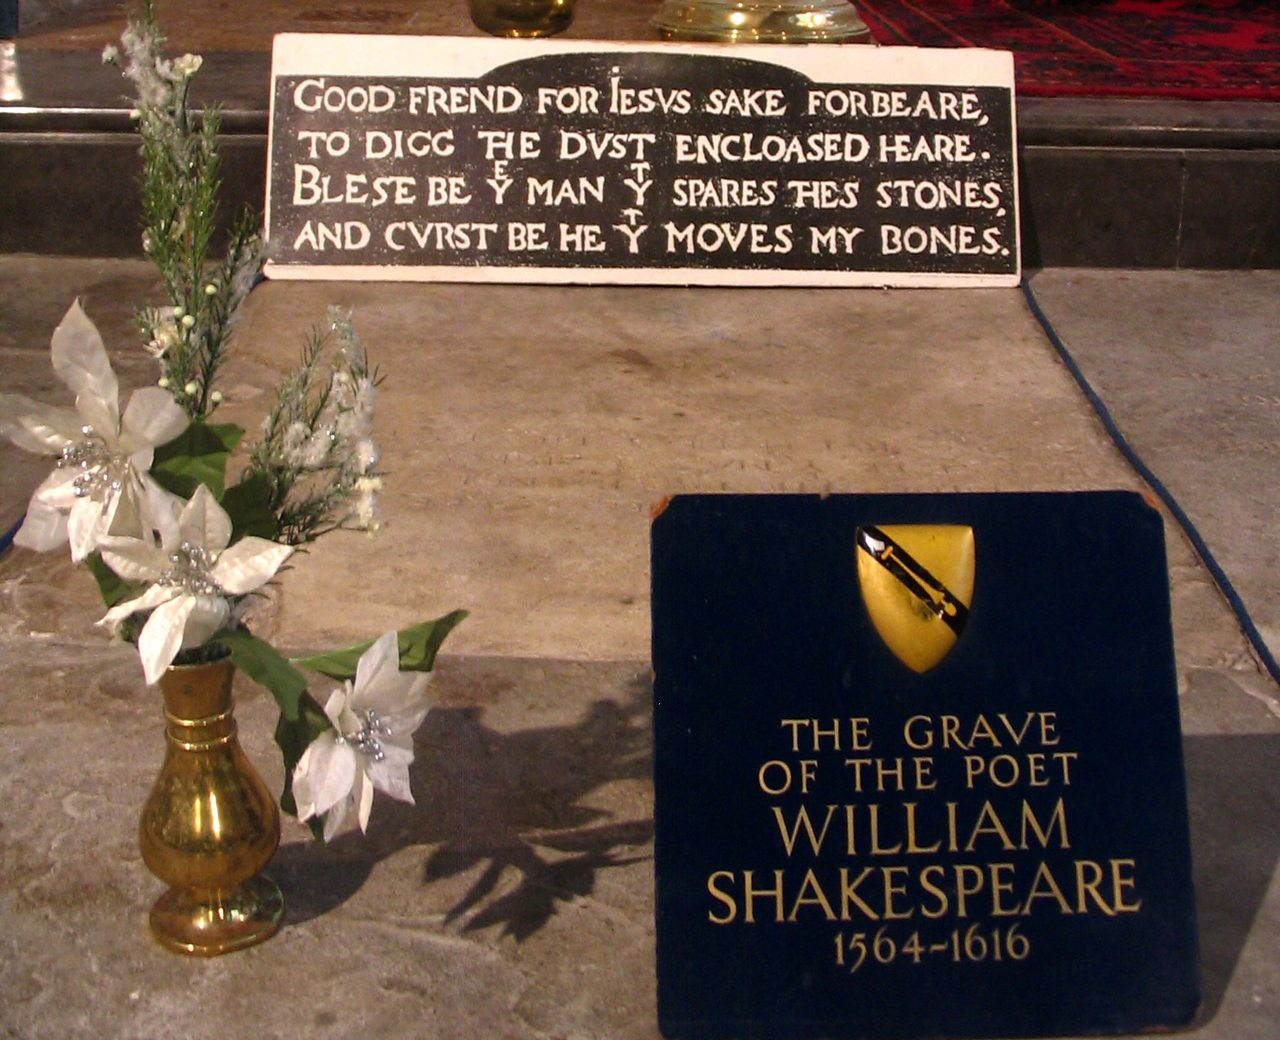 Shakespeare's grave in Holy Trinity, Stratford-upon-Avon.